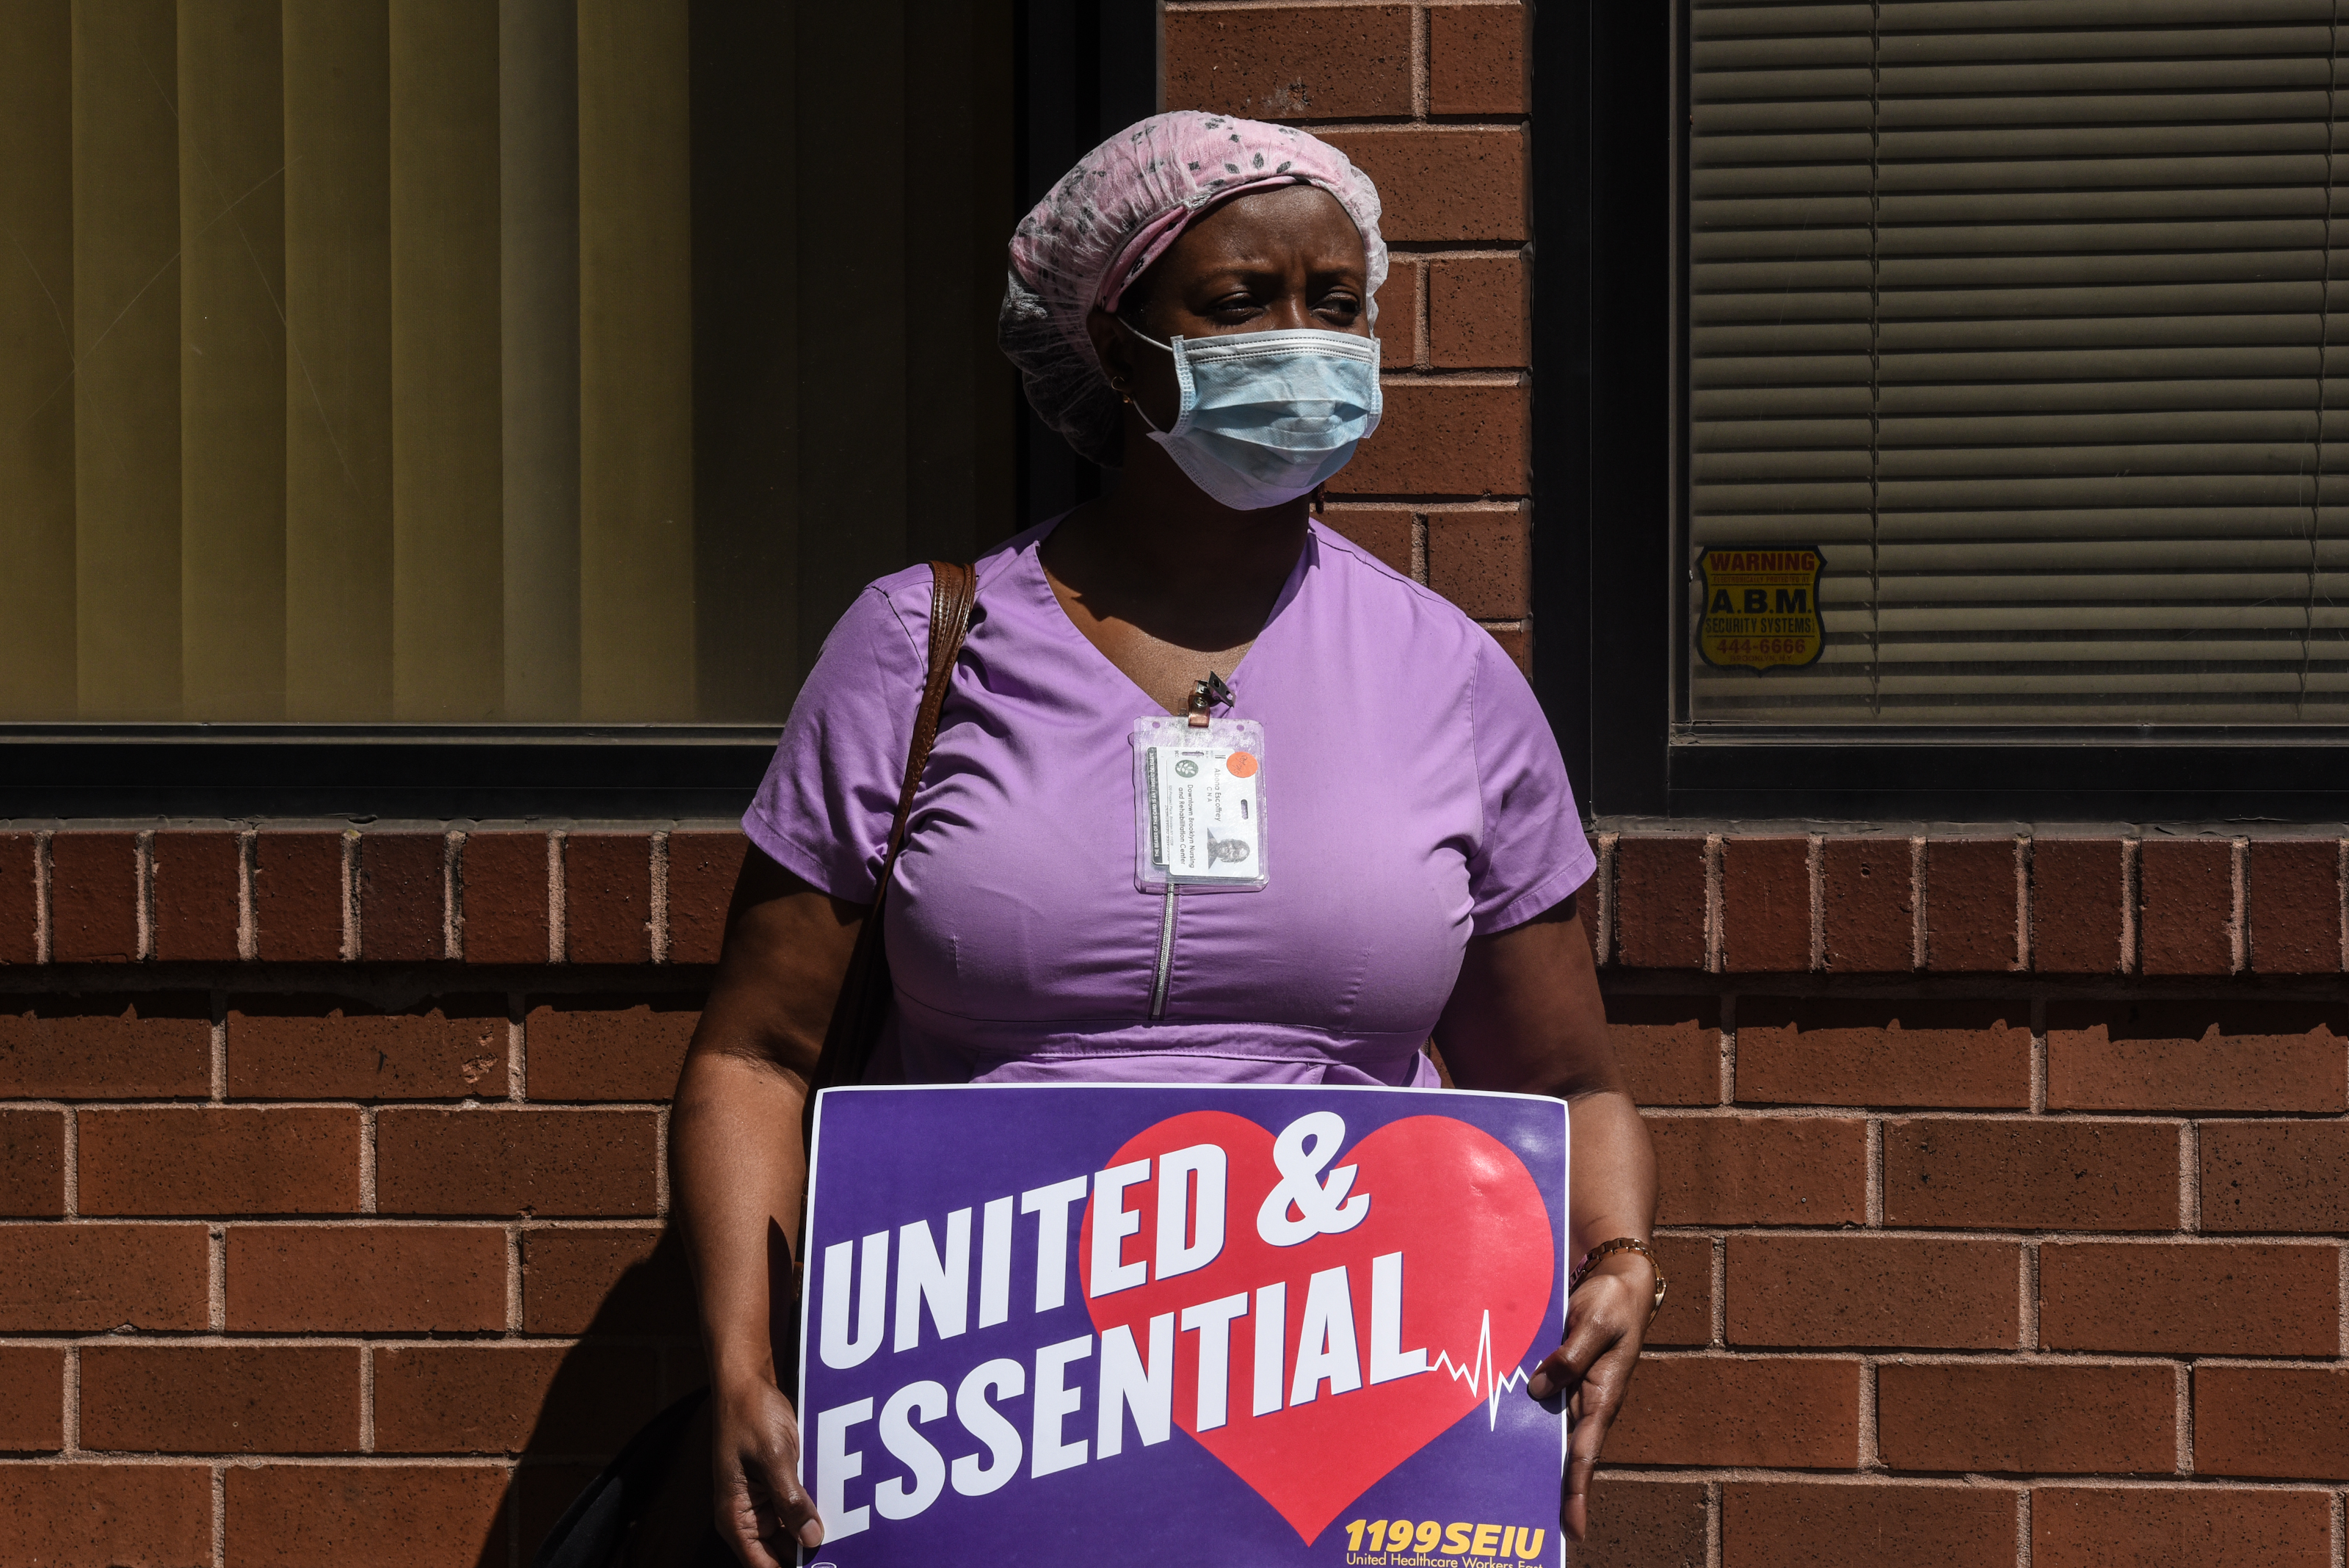 A nursing home worker participates in a a nursing home in the Brooklyn borough of New York City on May 21, 2020.